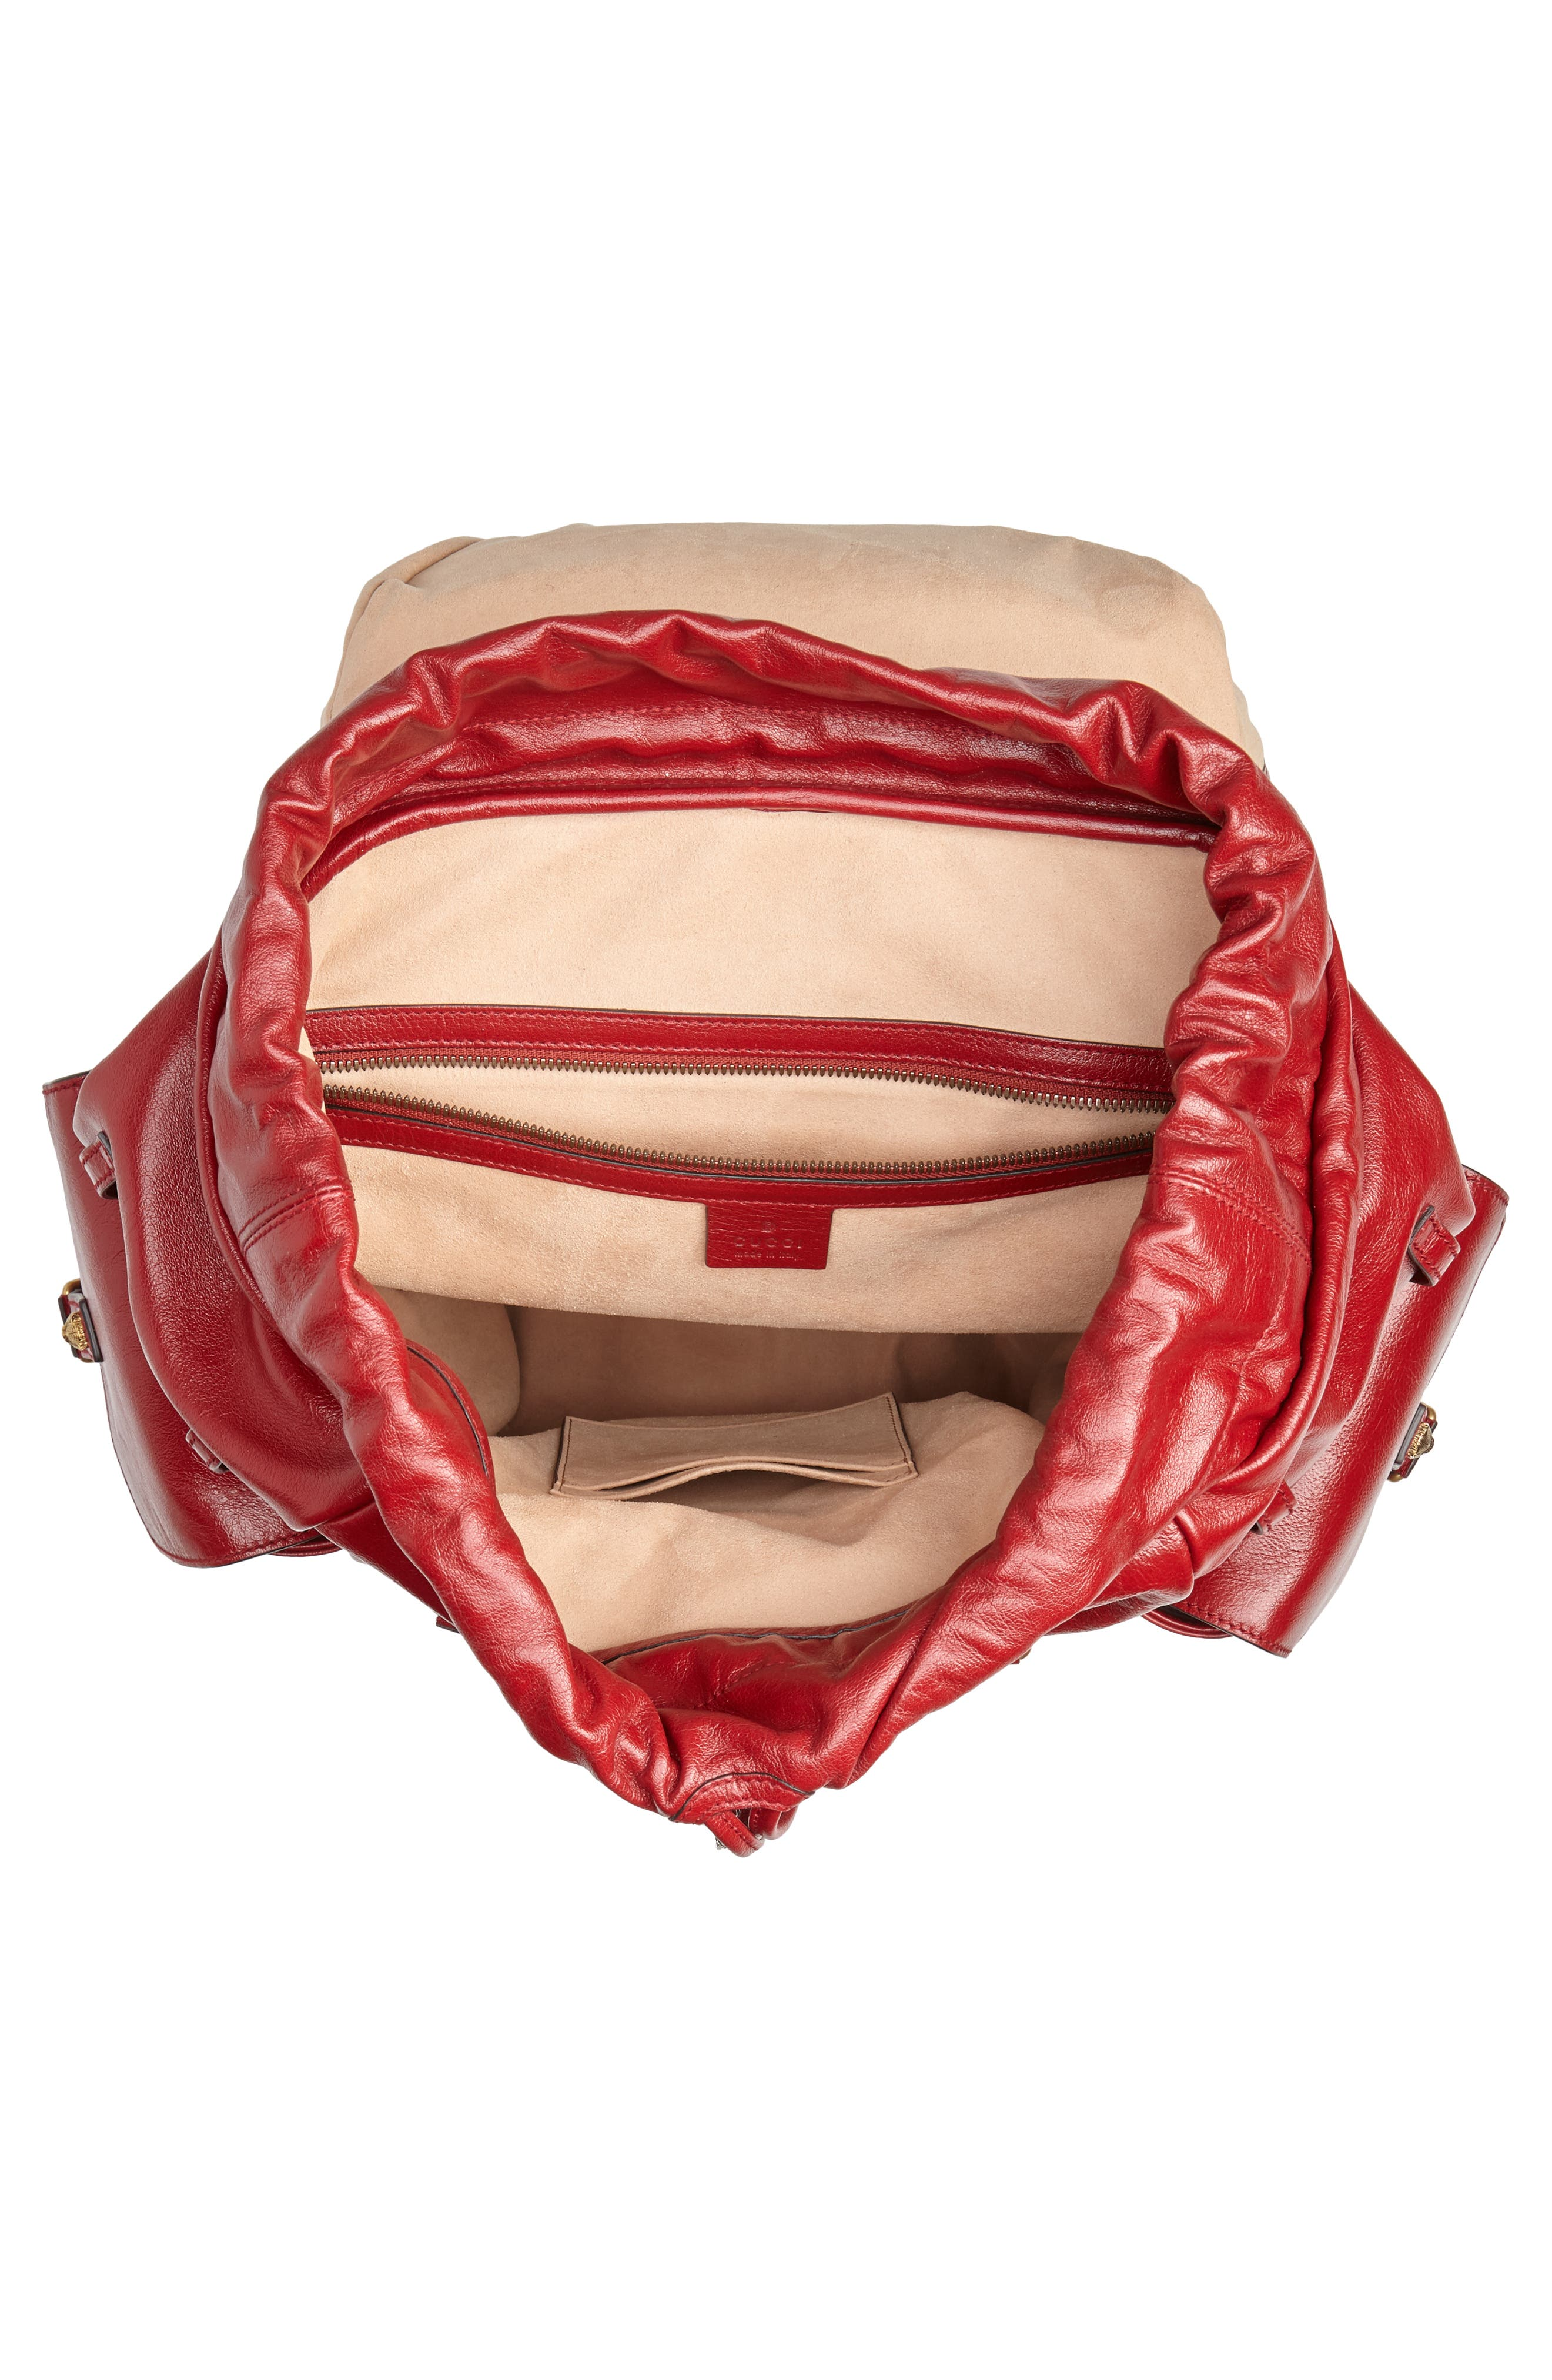 Piuma Leather Travel Backpack,                             Alternate thumbnail 4, color,                             PINK